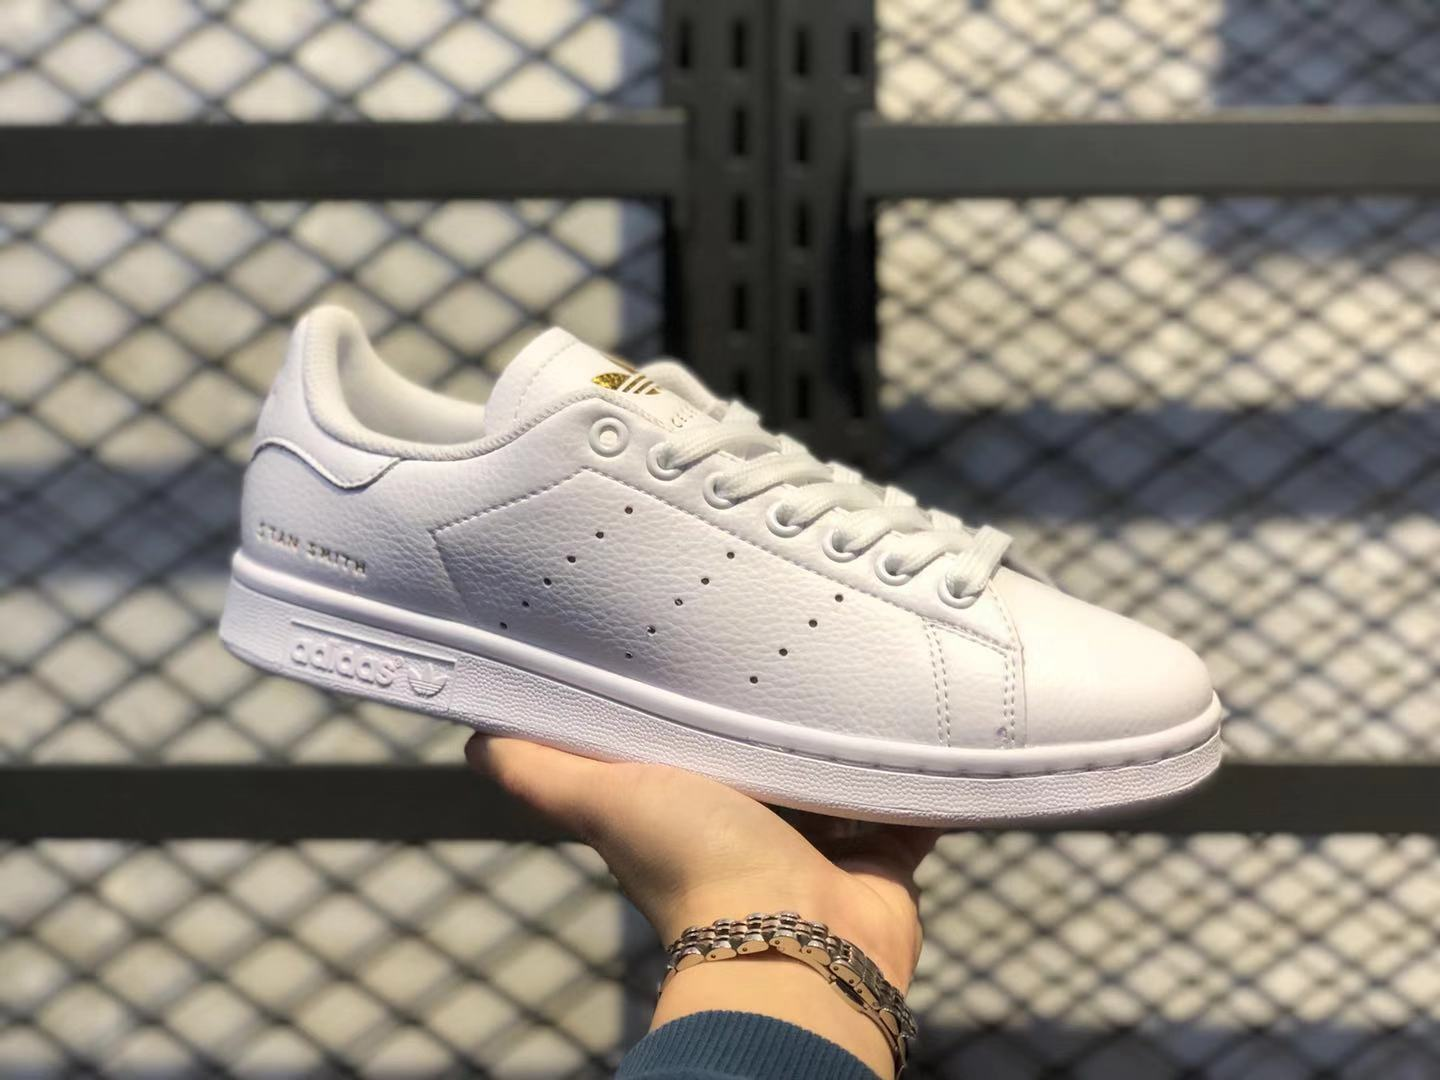 WMNS Adidas Superstar White/Gold Stan Smith Shoes FU9193 Free Shipping